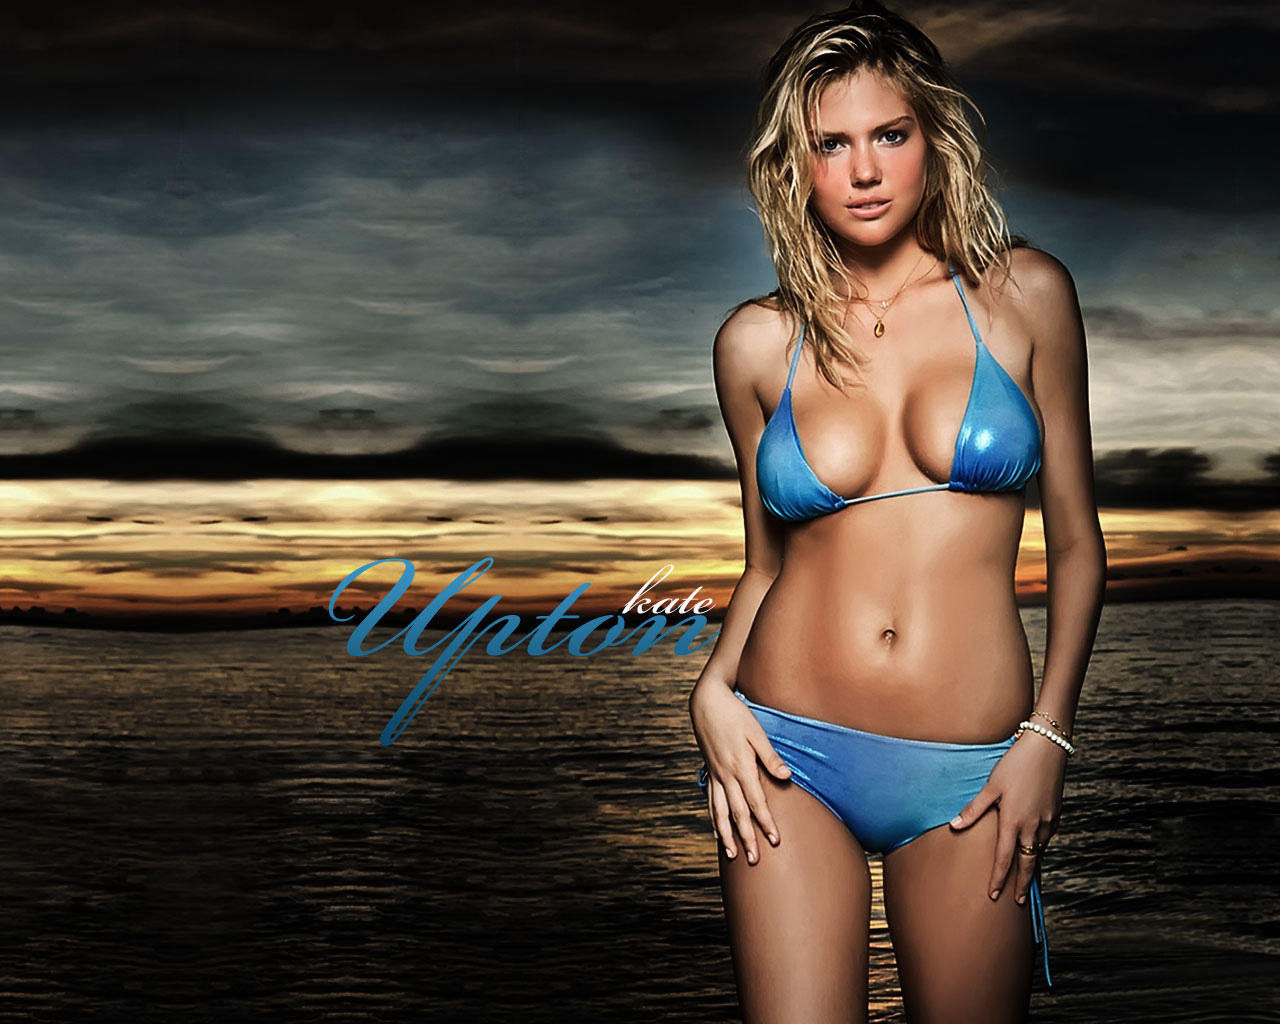 Kate Upton HD Wallpapers & Picture